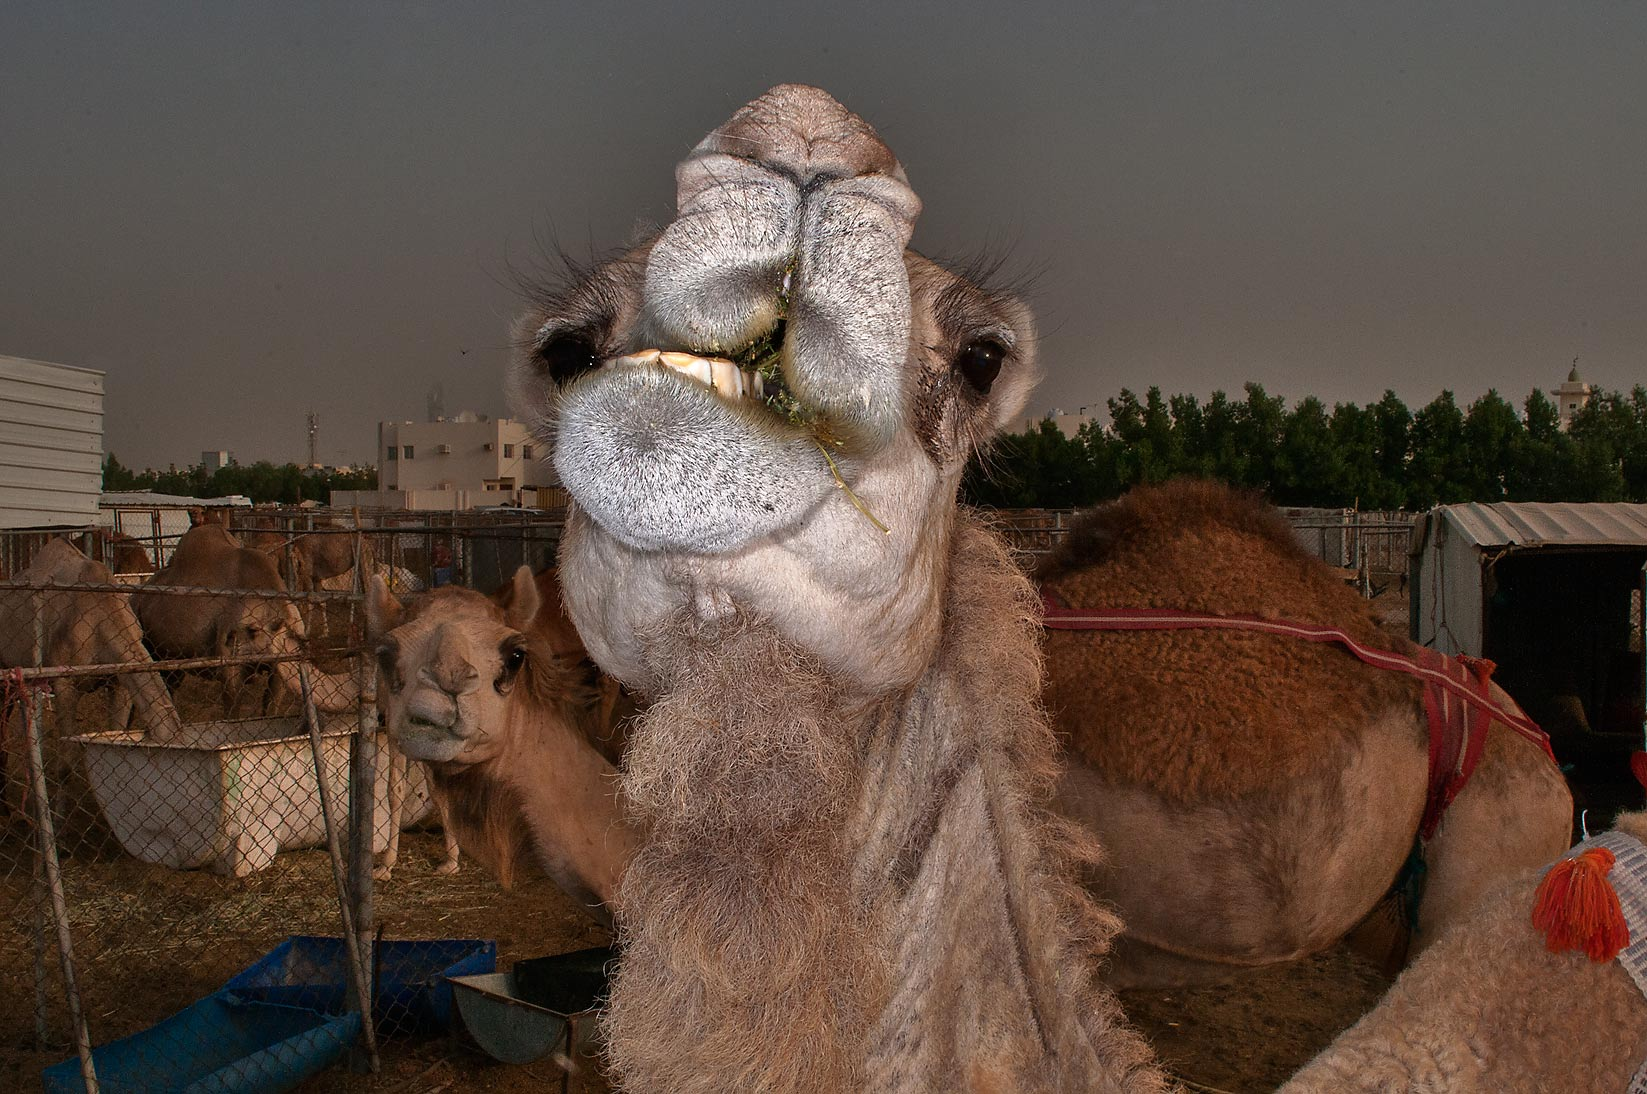 Chewing camels in Livestock Market, Wholesale Markets area. Doha, Qatar